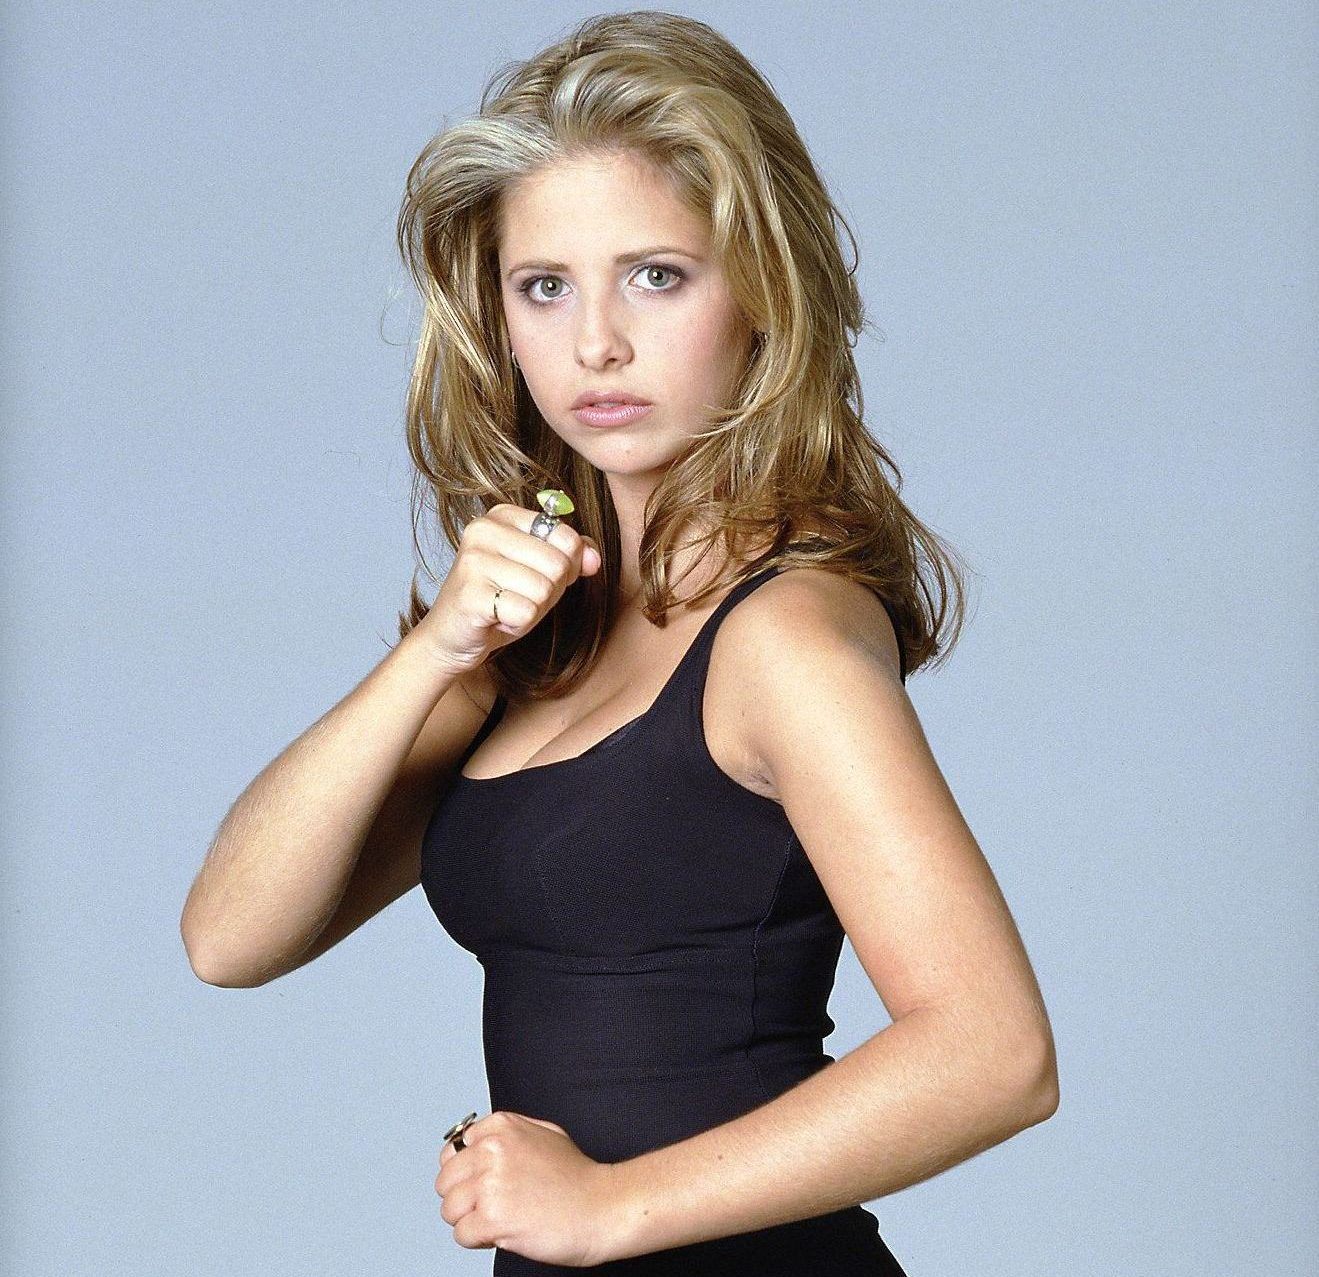 buffy sarah michelle gellar s1 51 dvdbash e1604592006517 21 90s TV Actresses We All Had A Crush On When We Were Younger